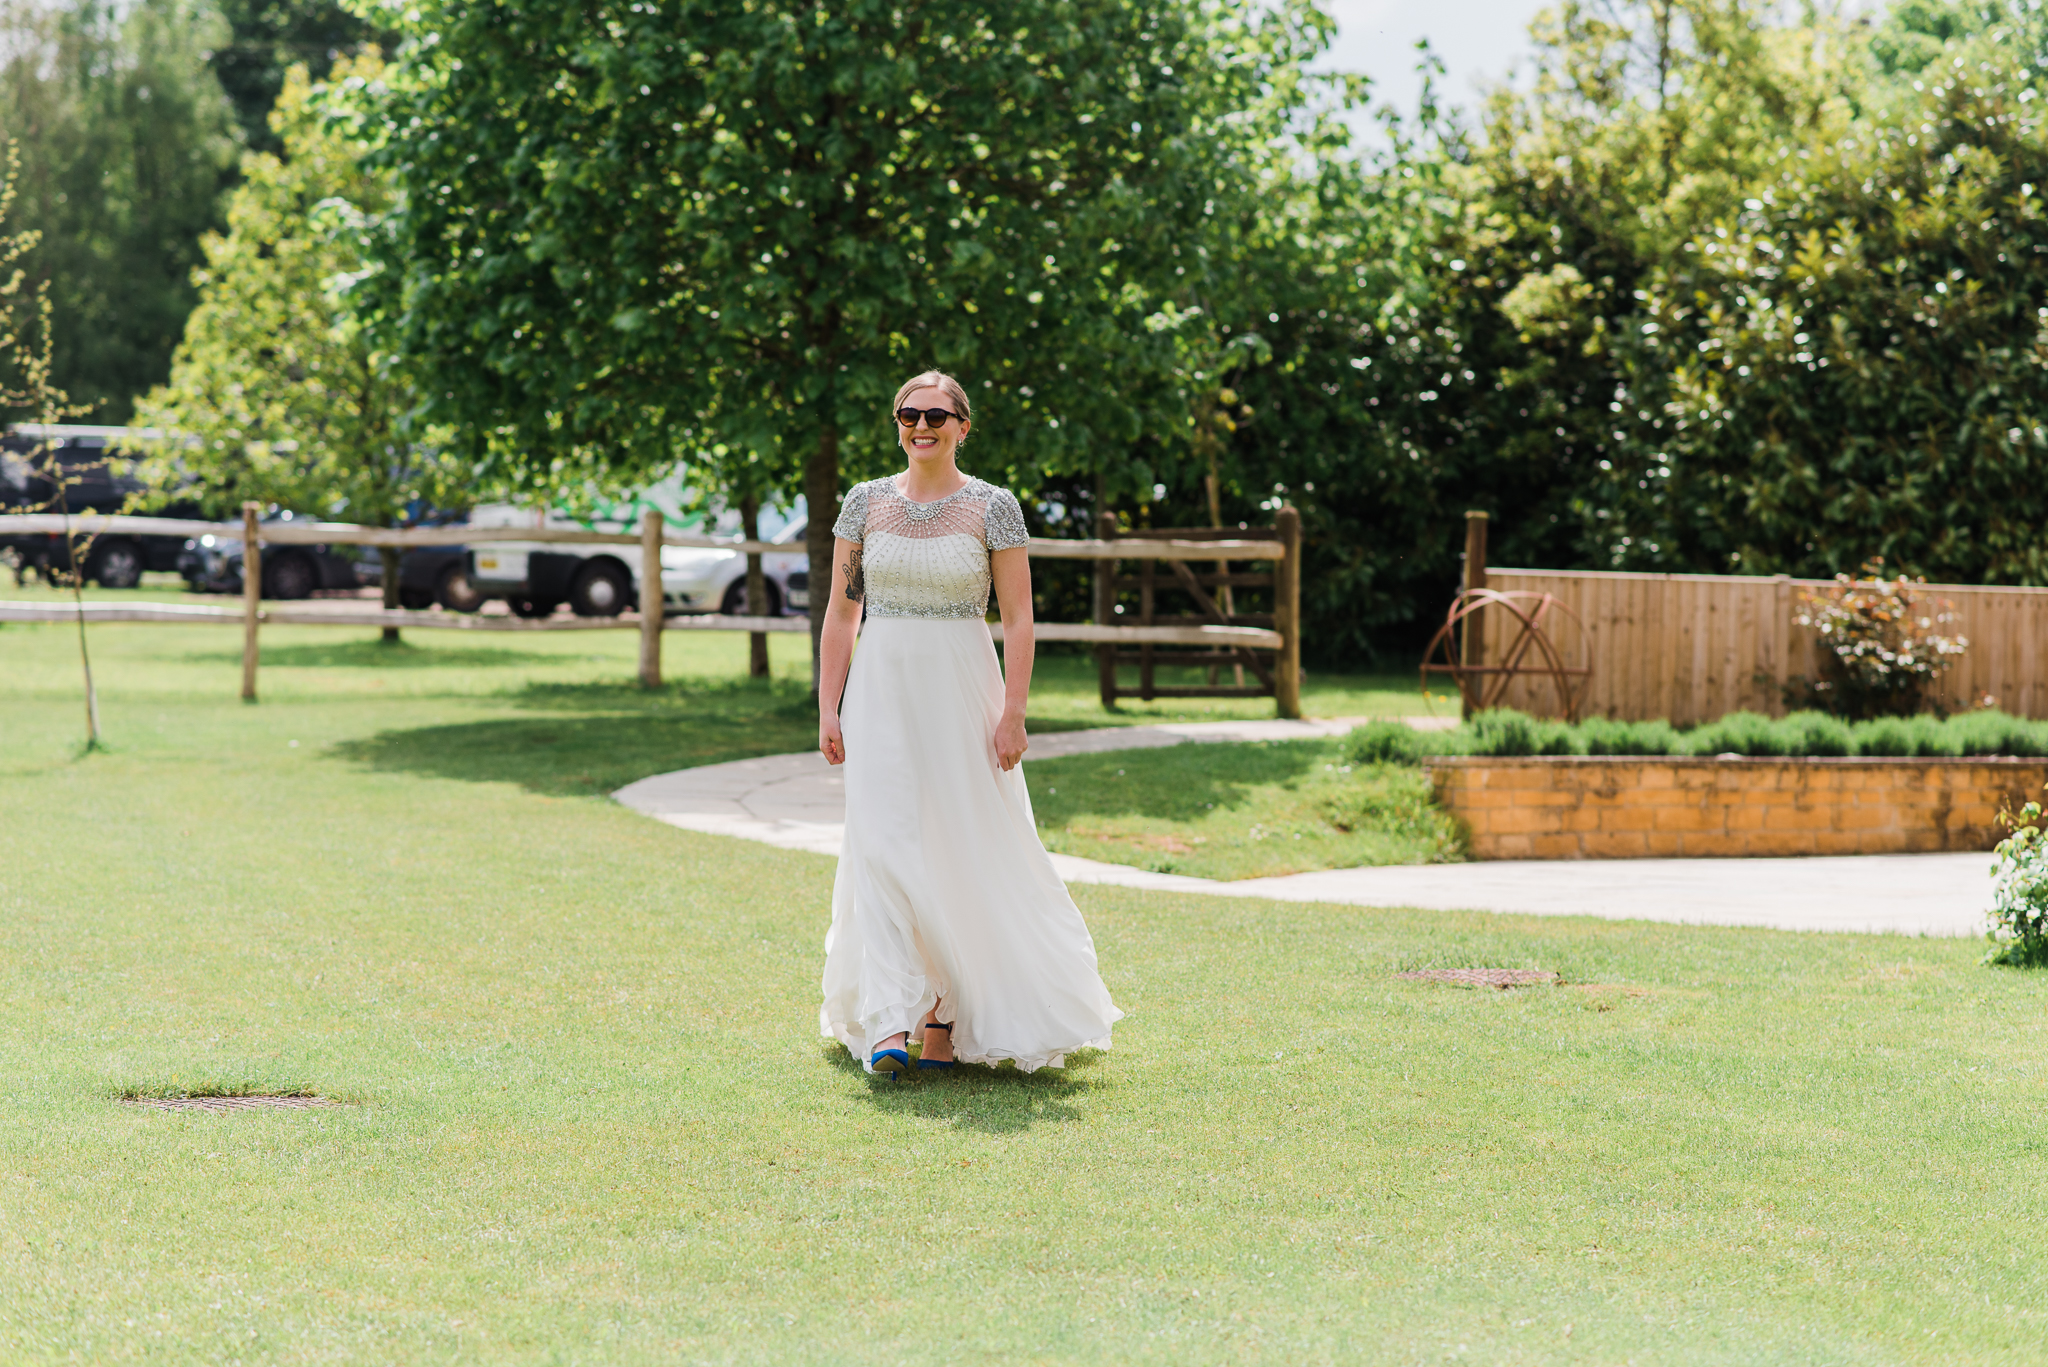 Bride in First Look at Lapstone Barn